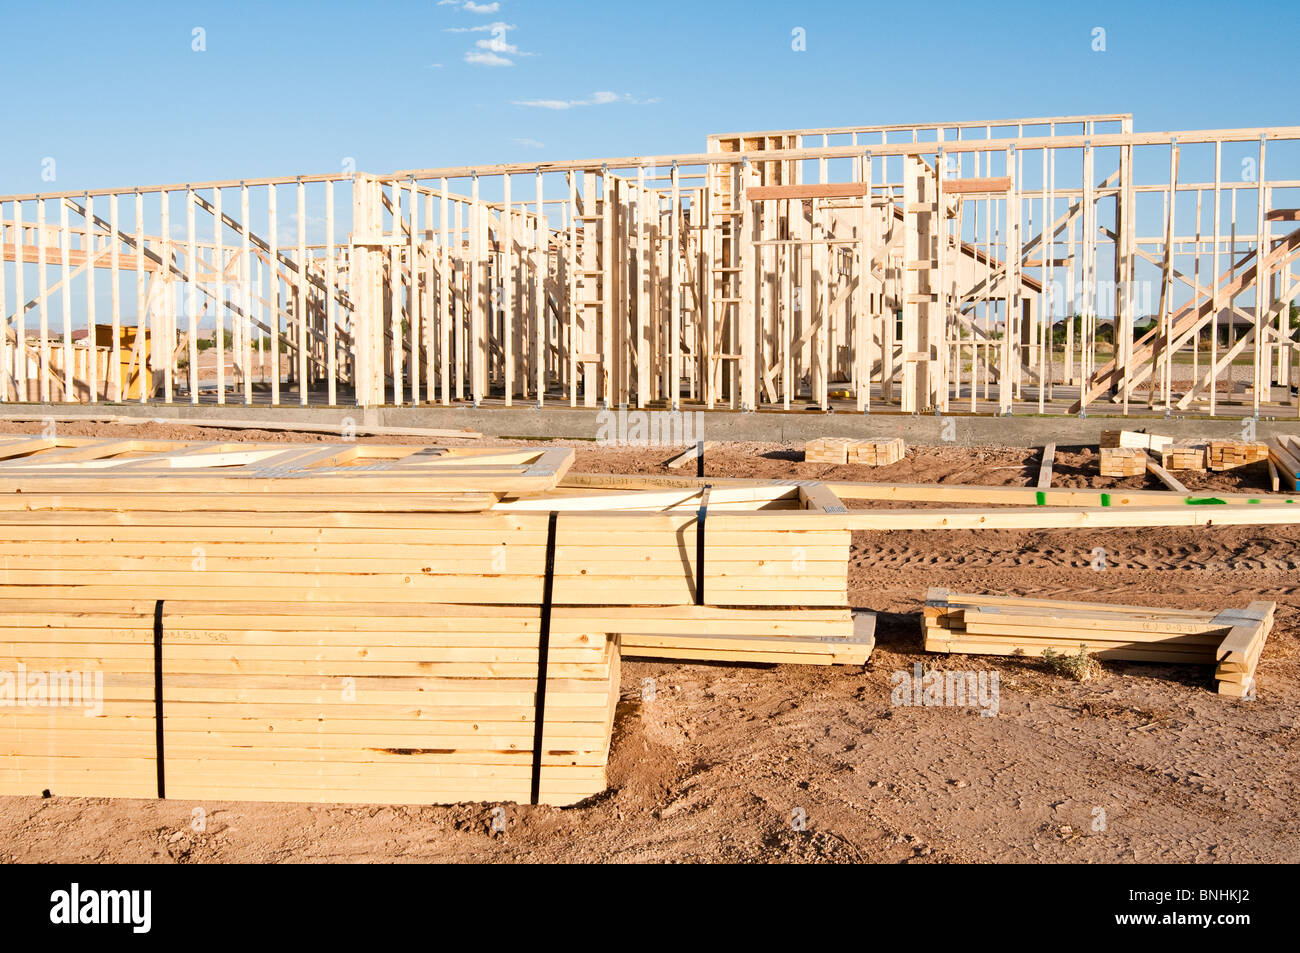 Building materials are stacked on the construction site for a new wood frame house being built in Arizona. - Stock Image